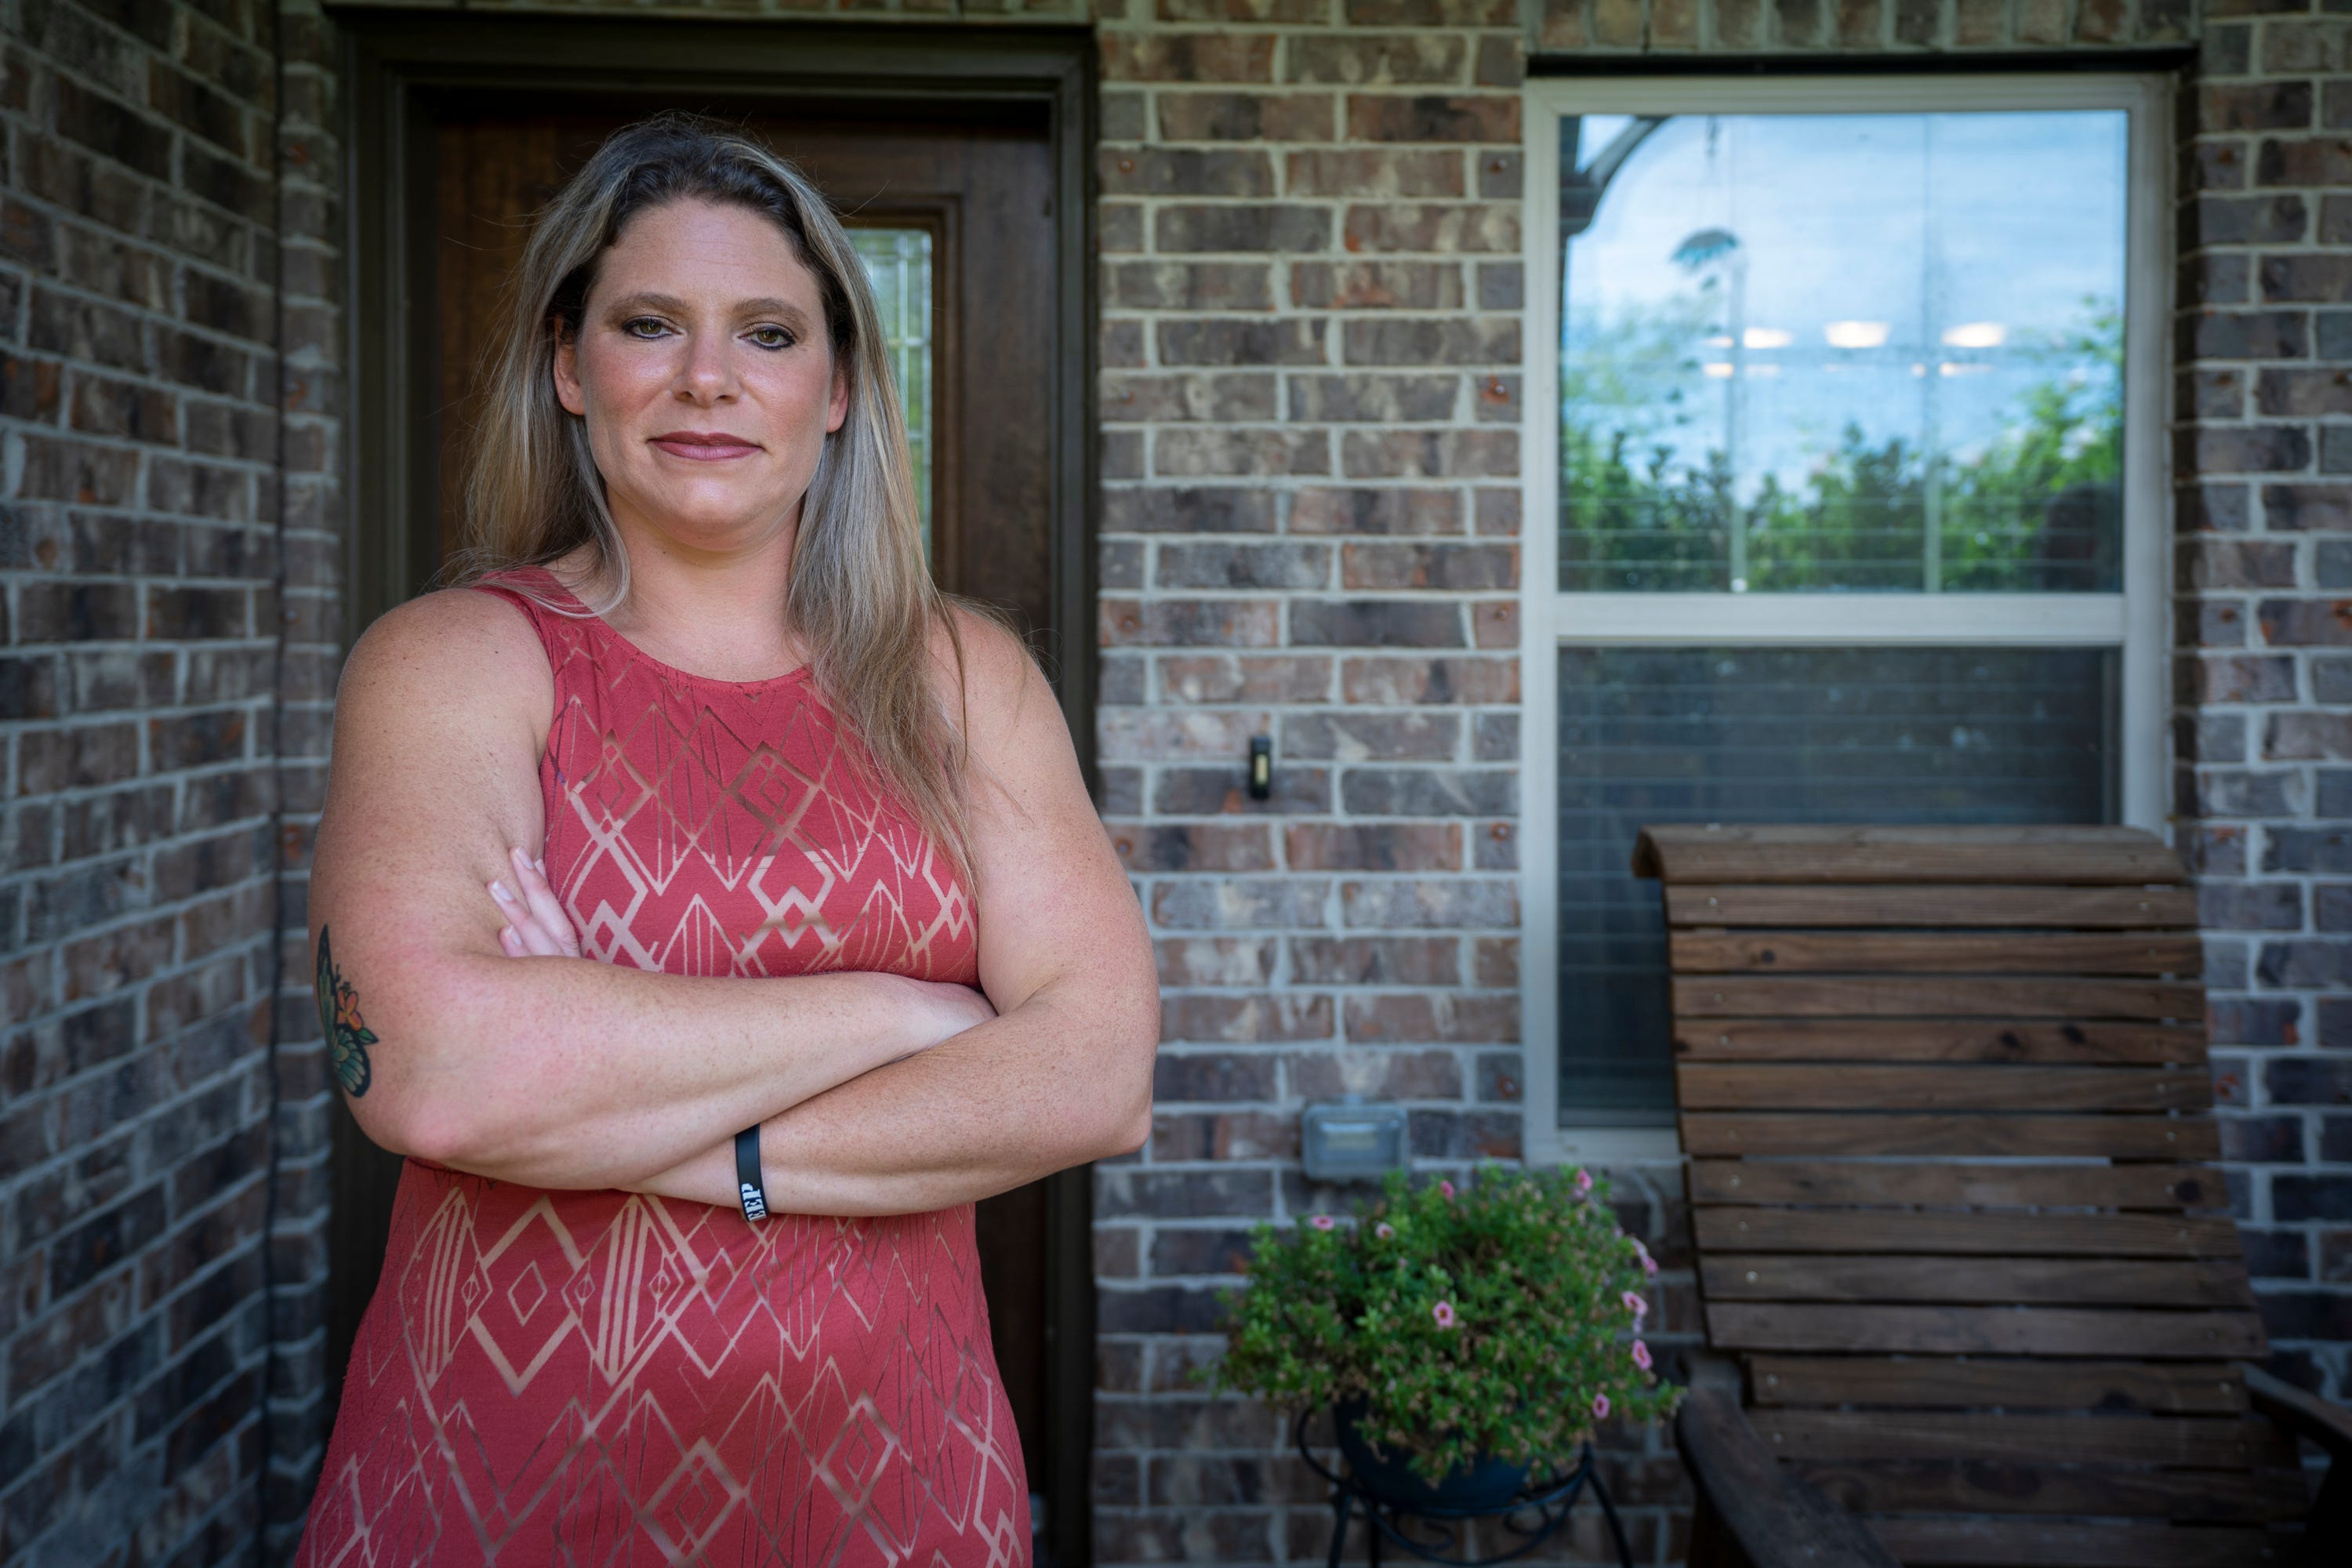 Jennifer Bridges, a nurse at Houston Methodist, became an overnight celebrity among some in the anti-vaccine community.